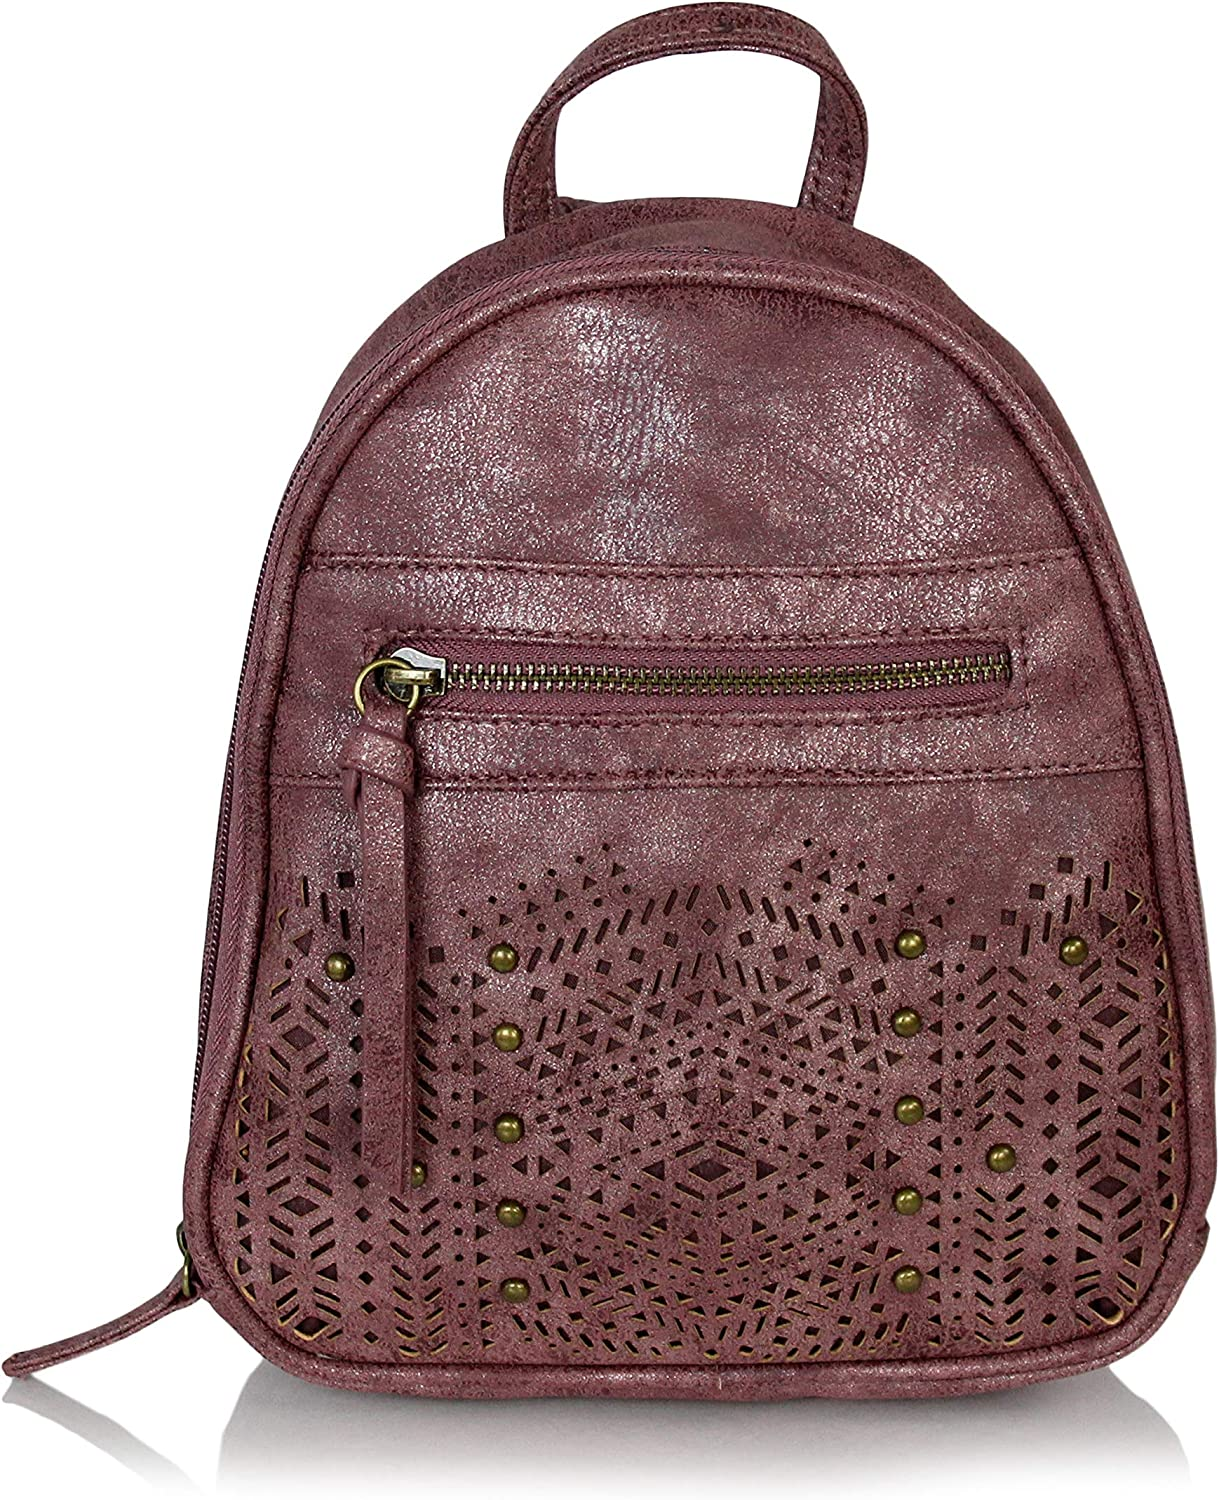 Bohemian Laser Cut Out Vegan Suede Daypack Bag Mini Cute Hipster Perforated Design Women's Travel Backpack or School Bag (Shimmer Metallic Dusty Mauve Purple)